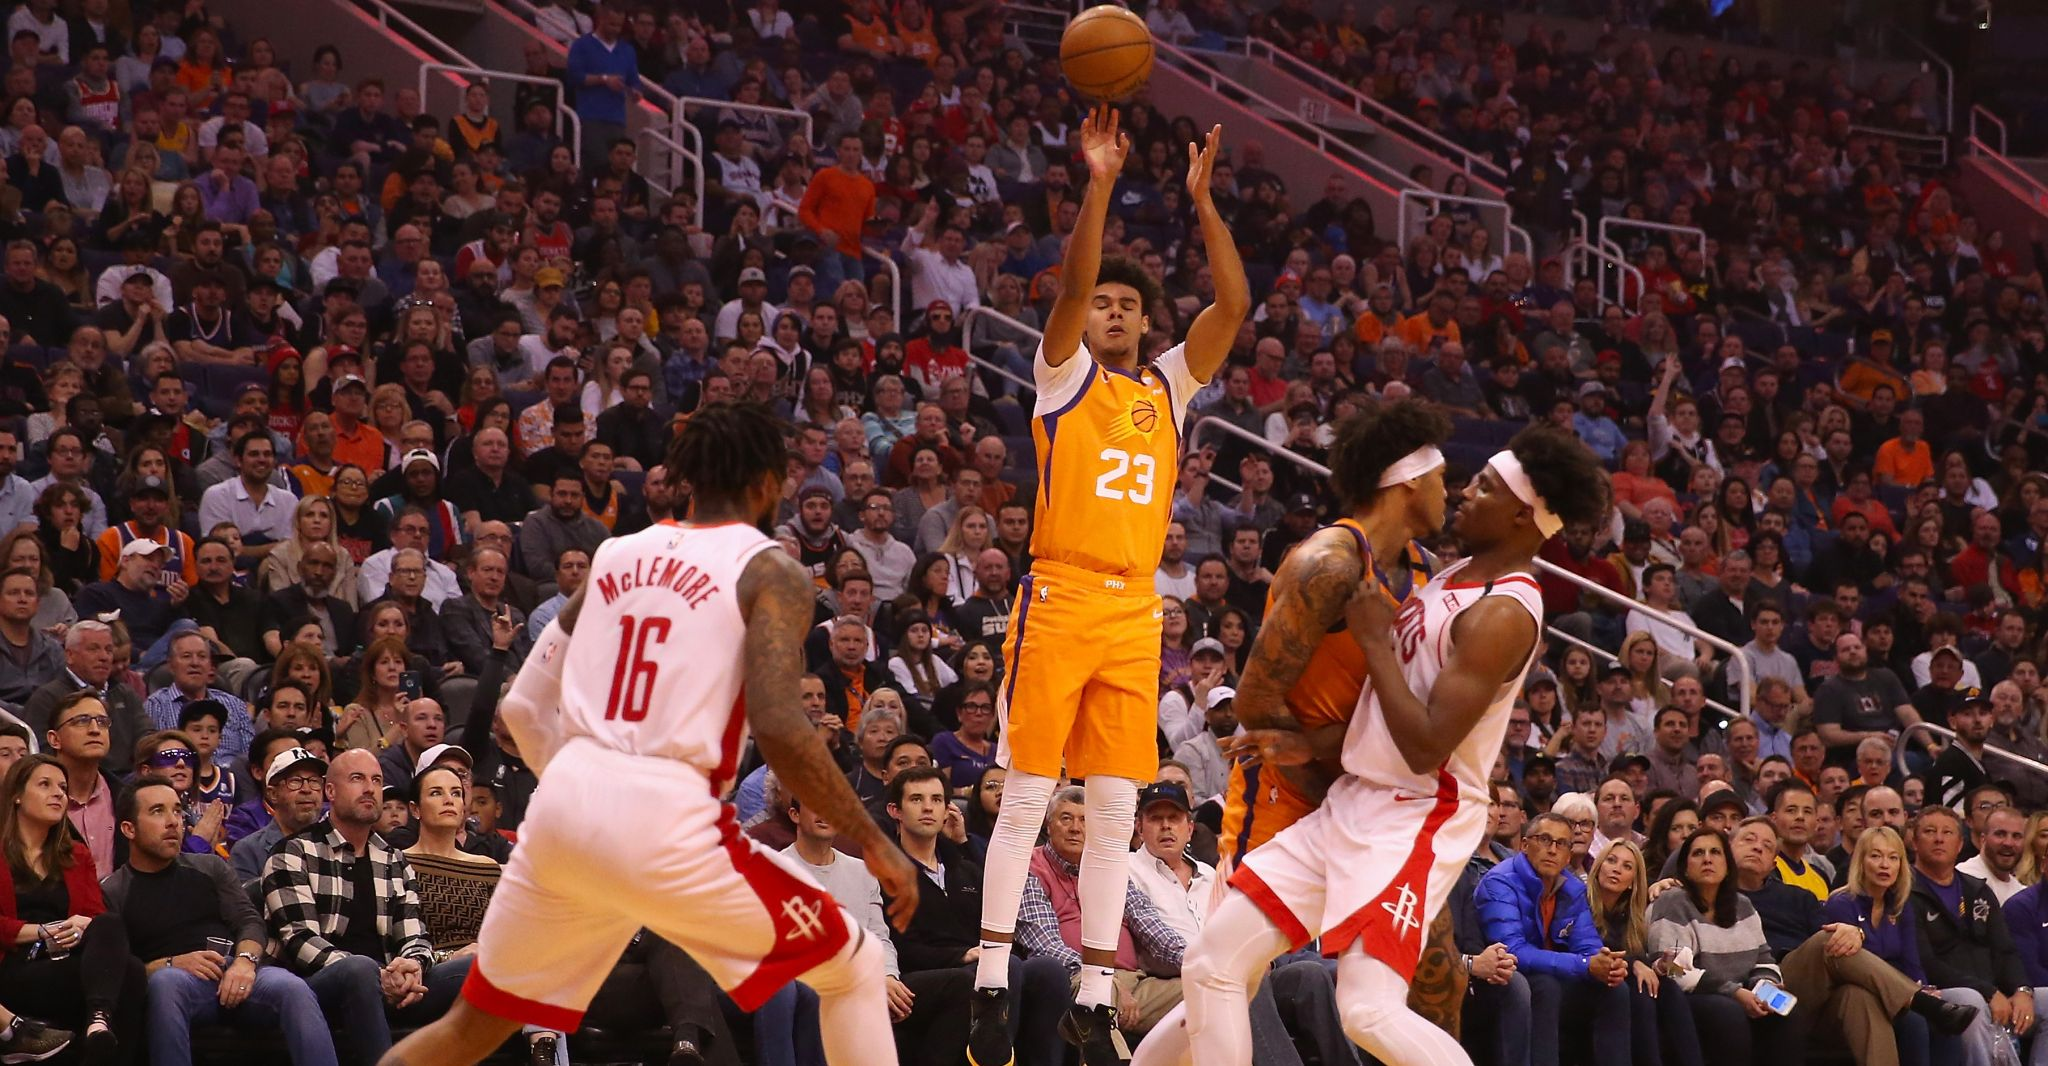 Rockets get crushed by Suns in worst blowout loss of season